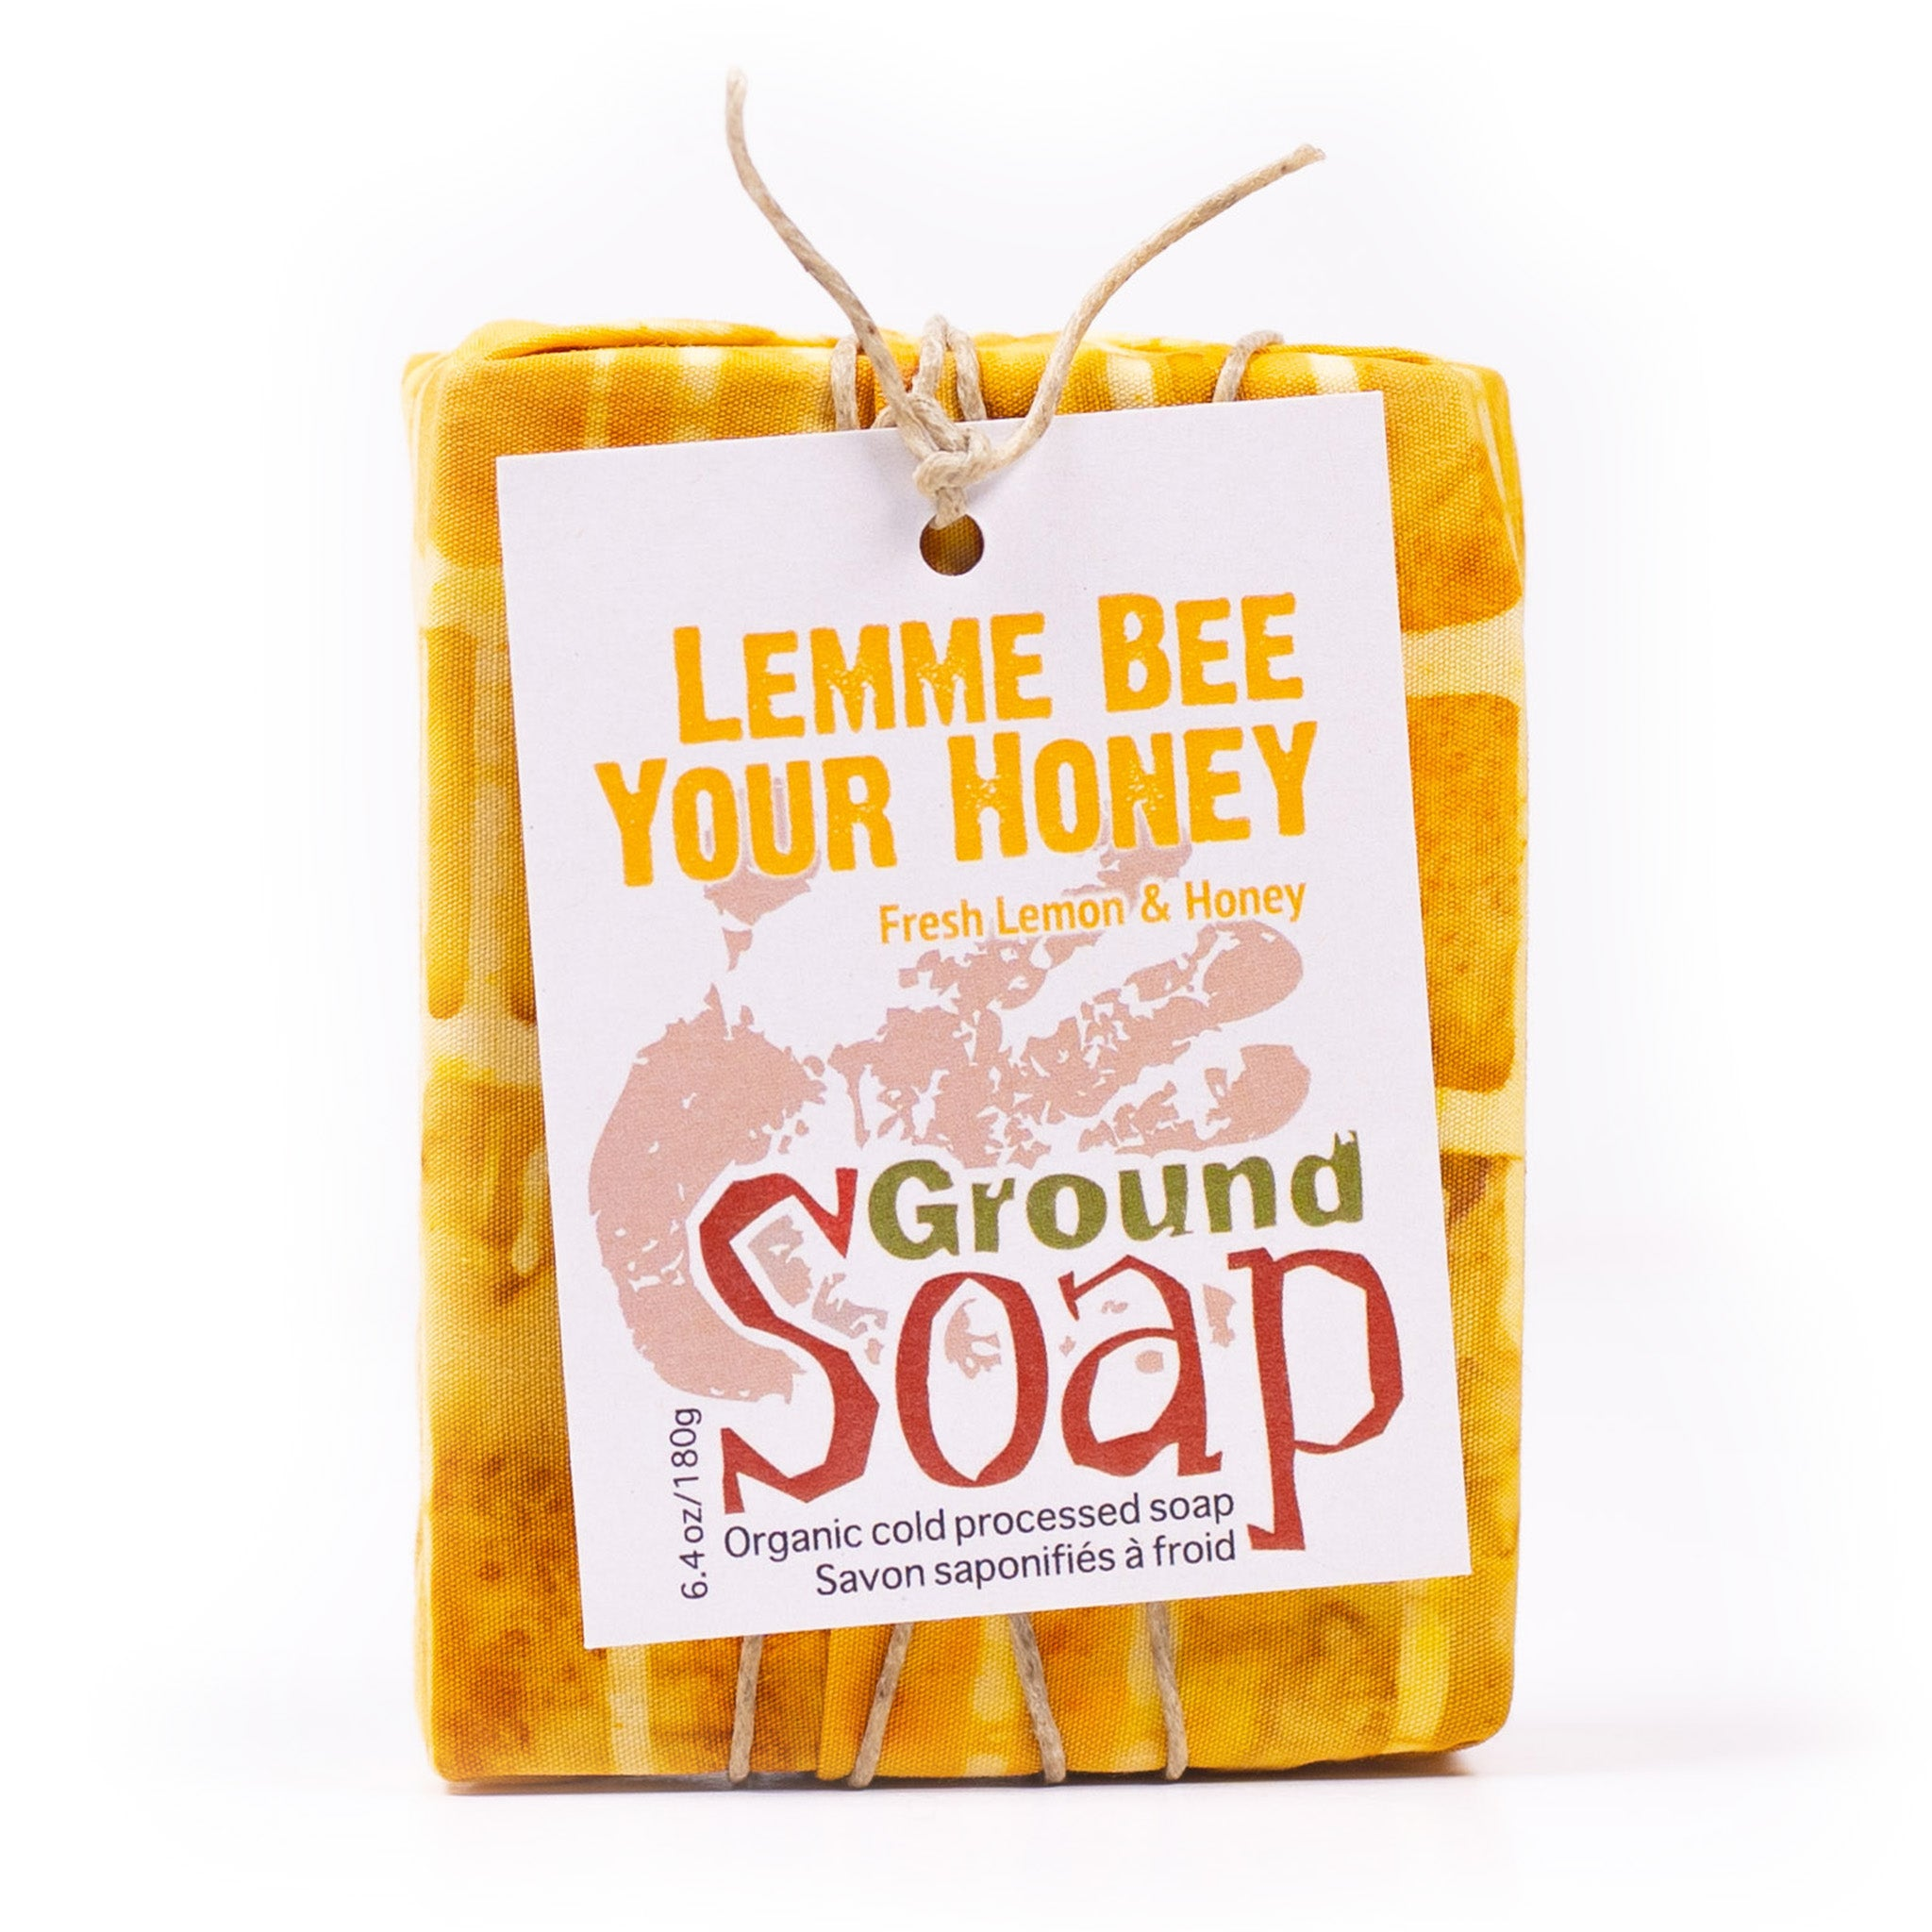 Lemme Bee Your Honey lemon essential oil and honey organic bar soap from ground Soap.